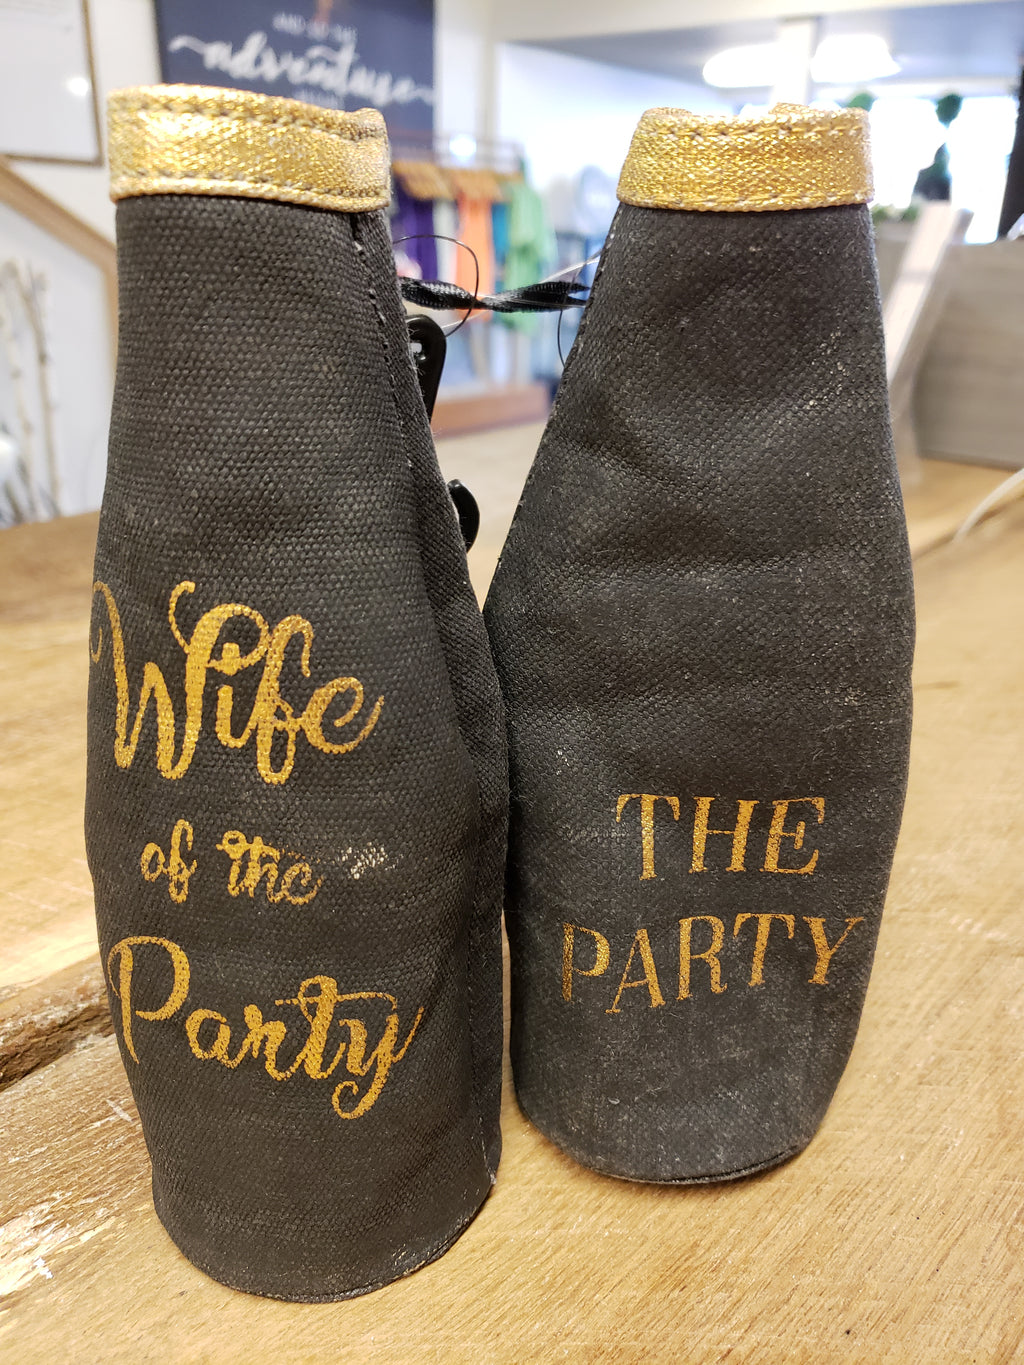 Wife/Party Pair - Bottle Koozie